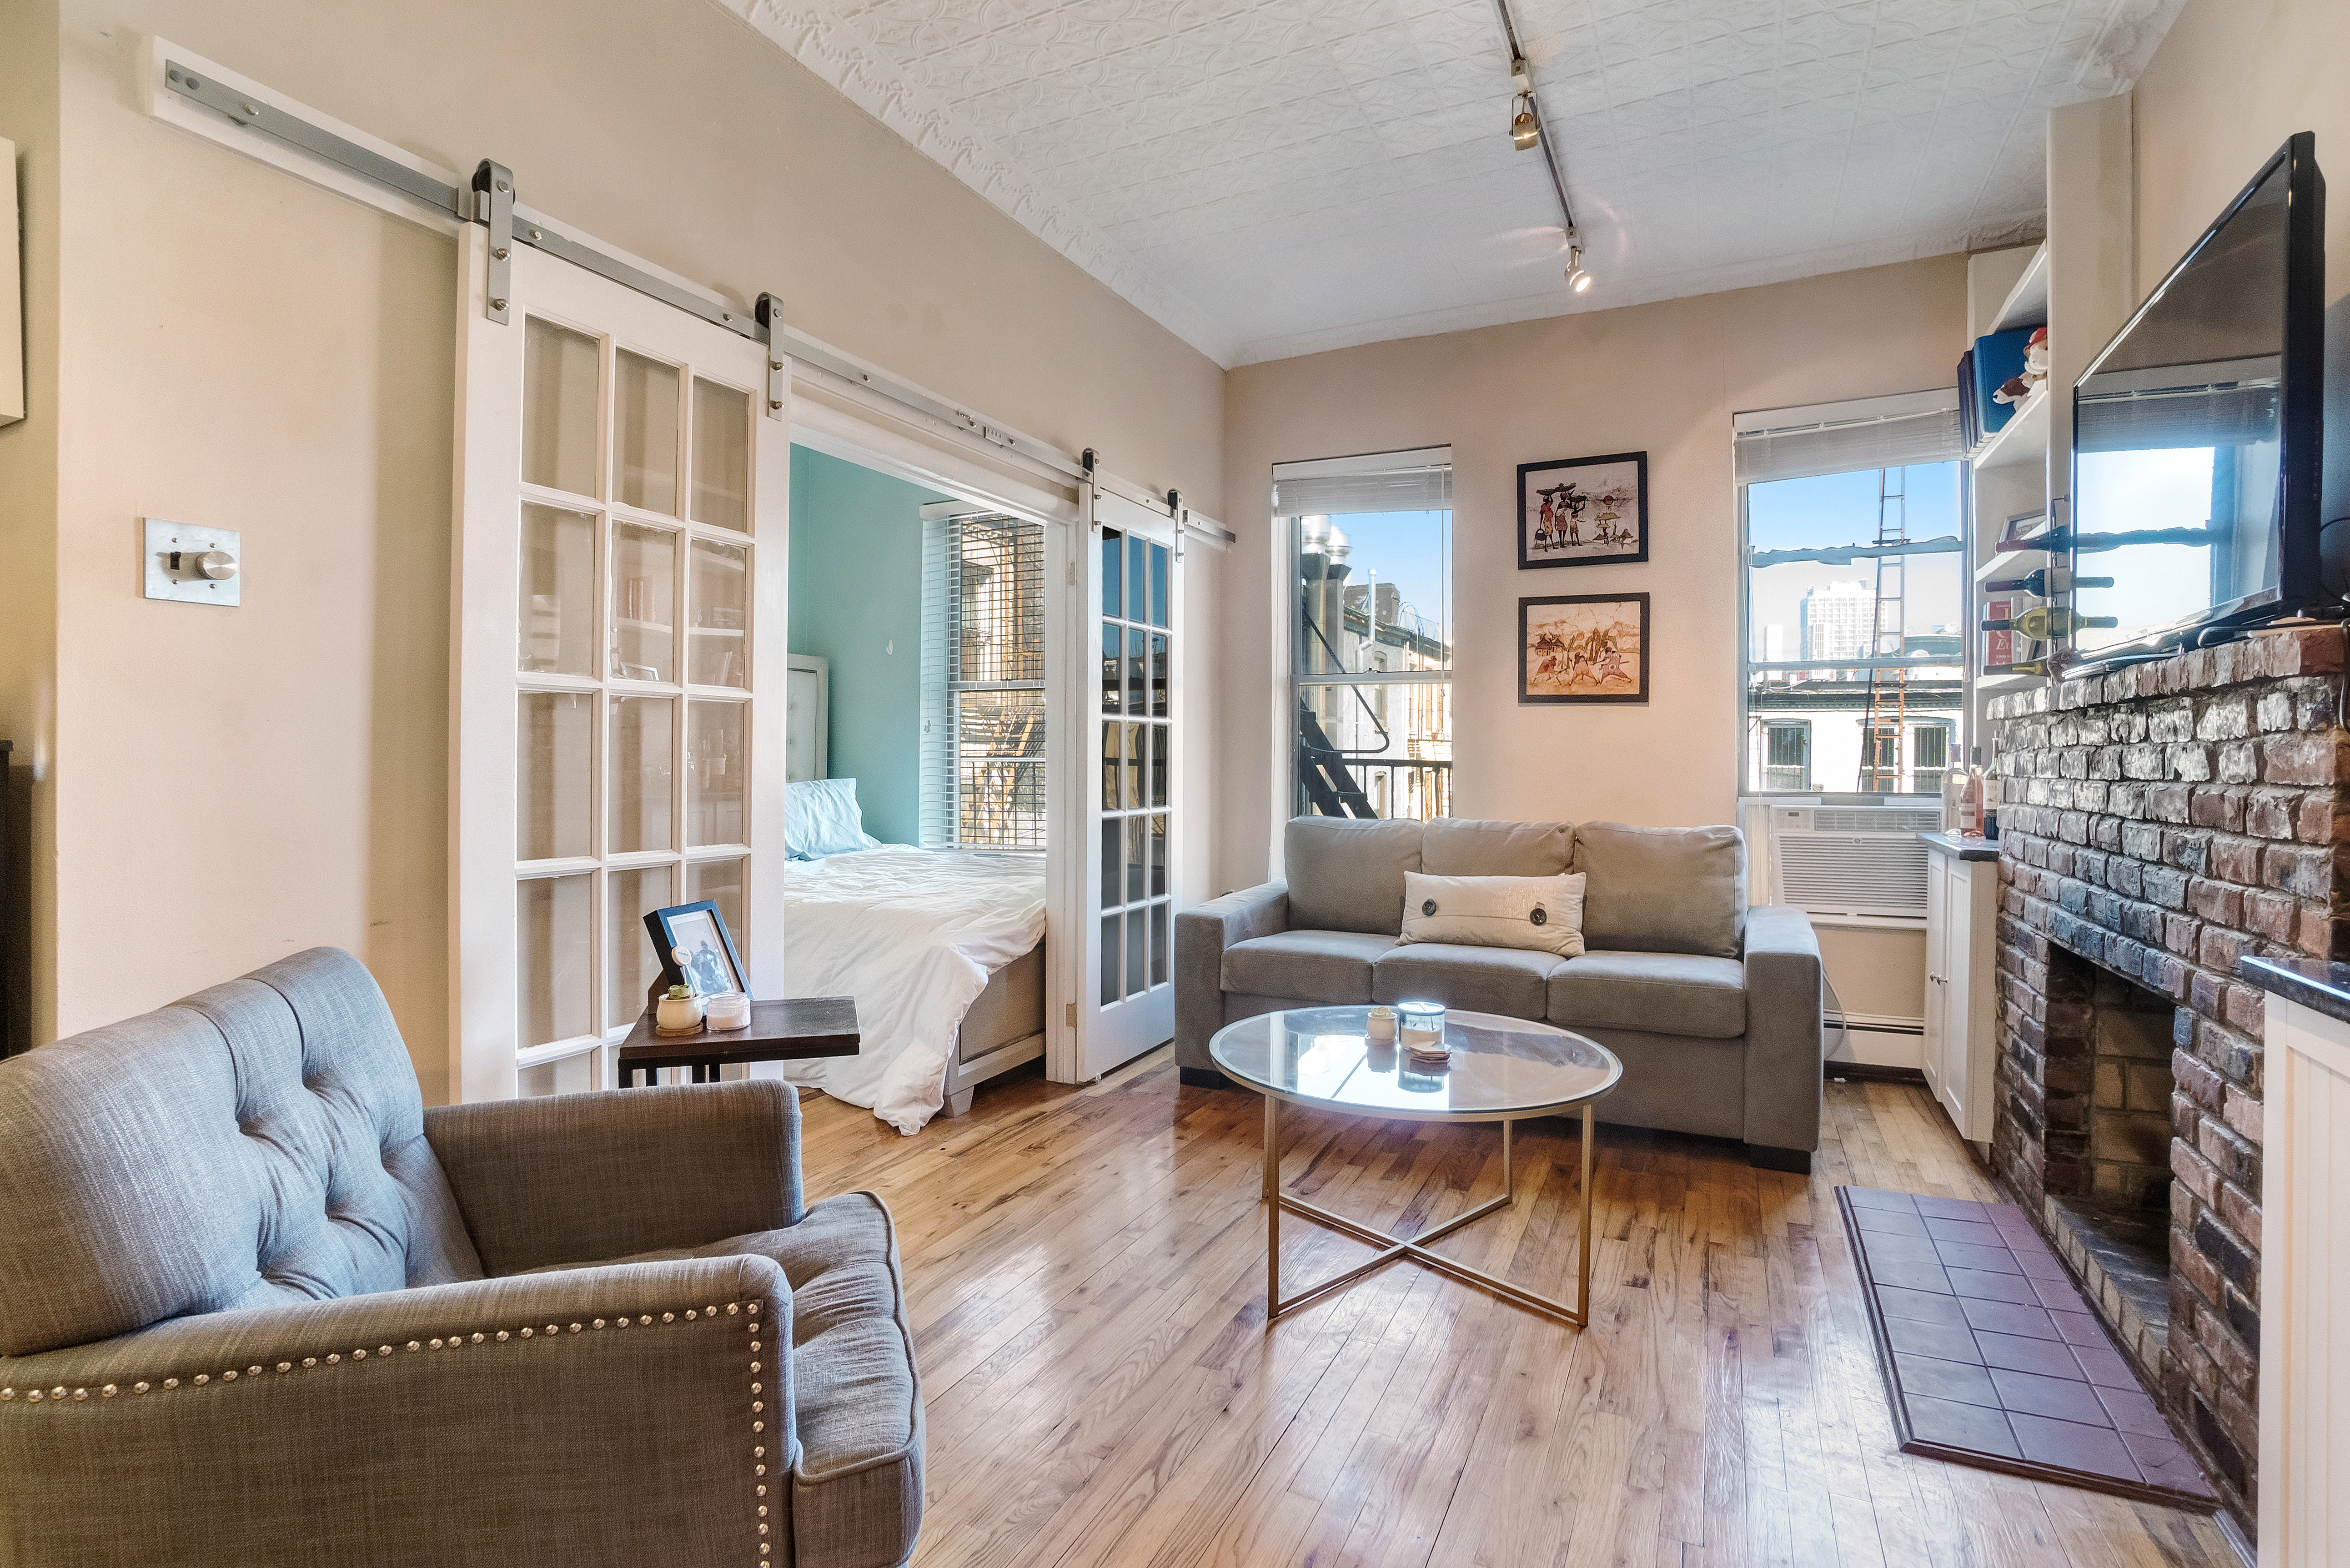 A living area with hardwood floors, two windows, a glass coffee table, exposed brick, and a wood-burning fireplace.